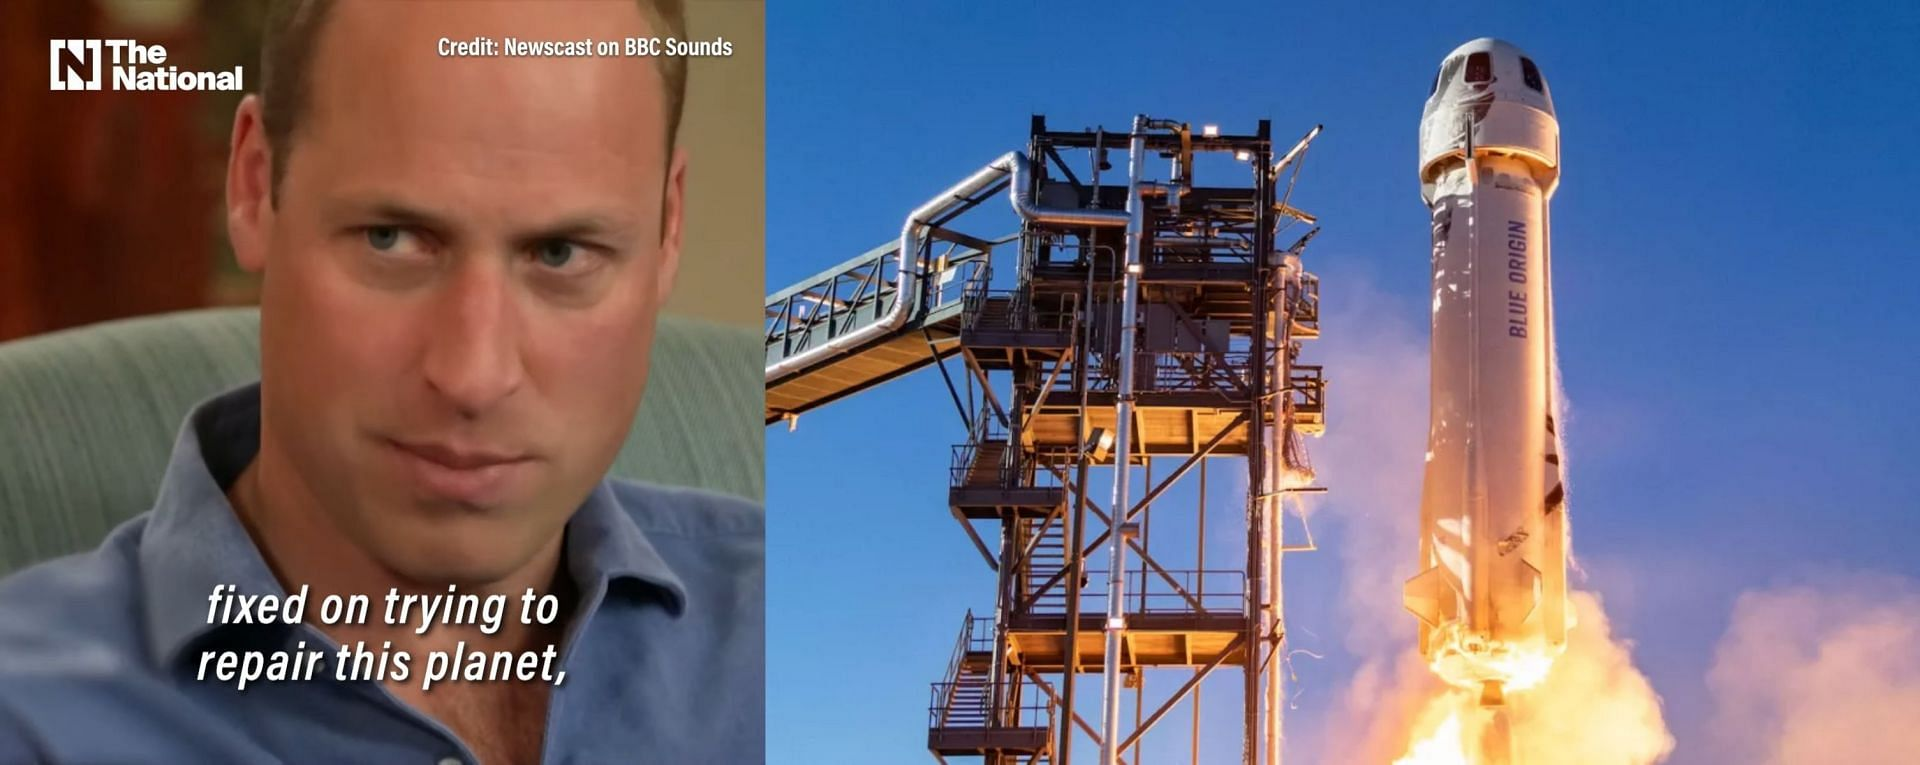 Prince William slamming the space race (Images via BBC Sounds and Blue Origin)